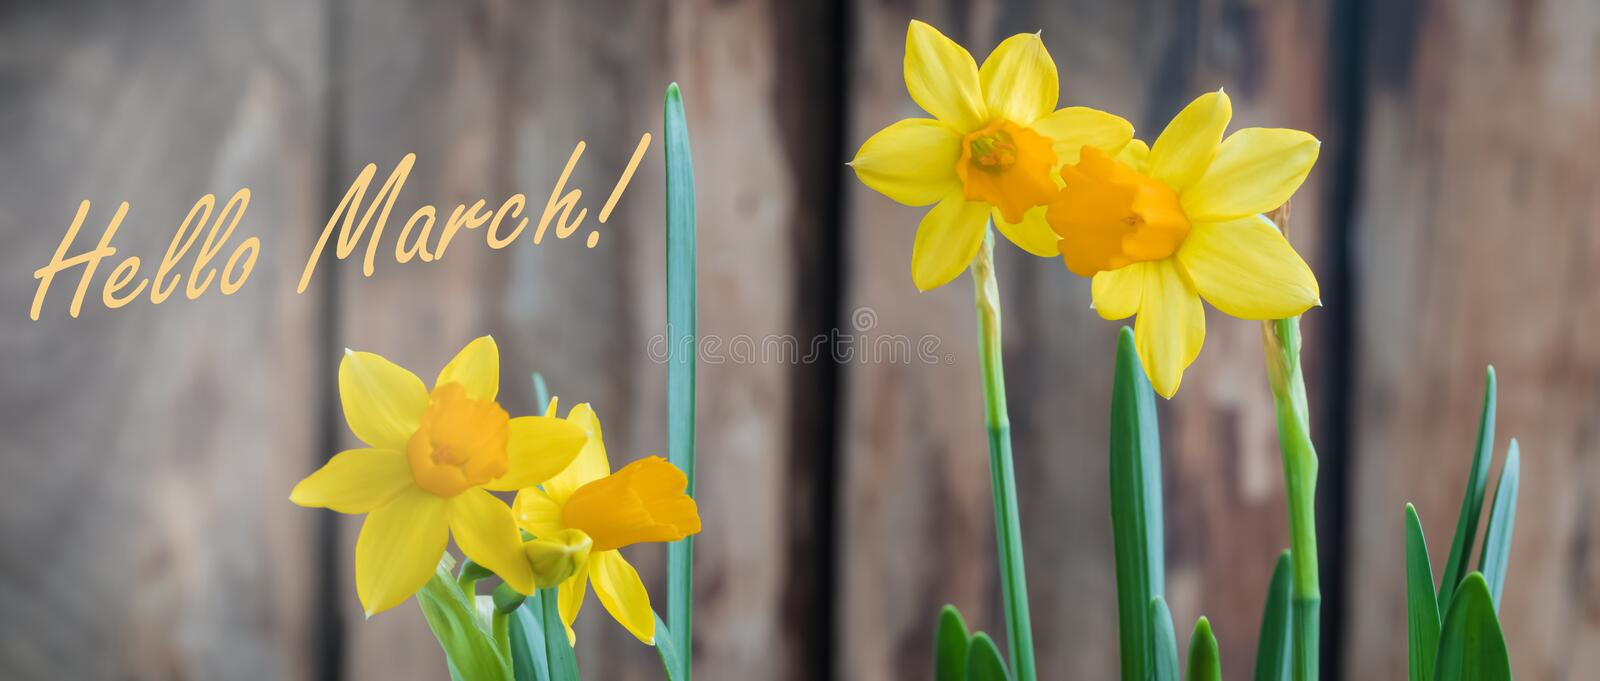 Spring yellow narcissus od daffodil over the wooden background, hello March banner. Spring yellow narcissus over the wooden background with a copy space royalty free stock photos